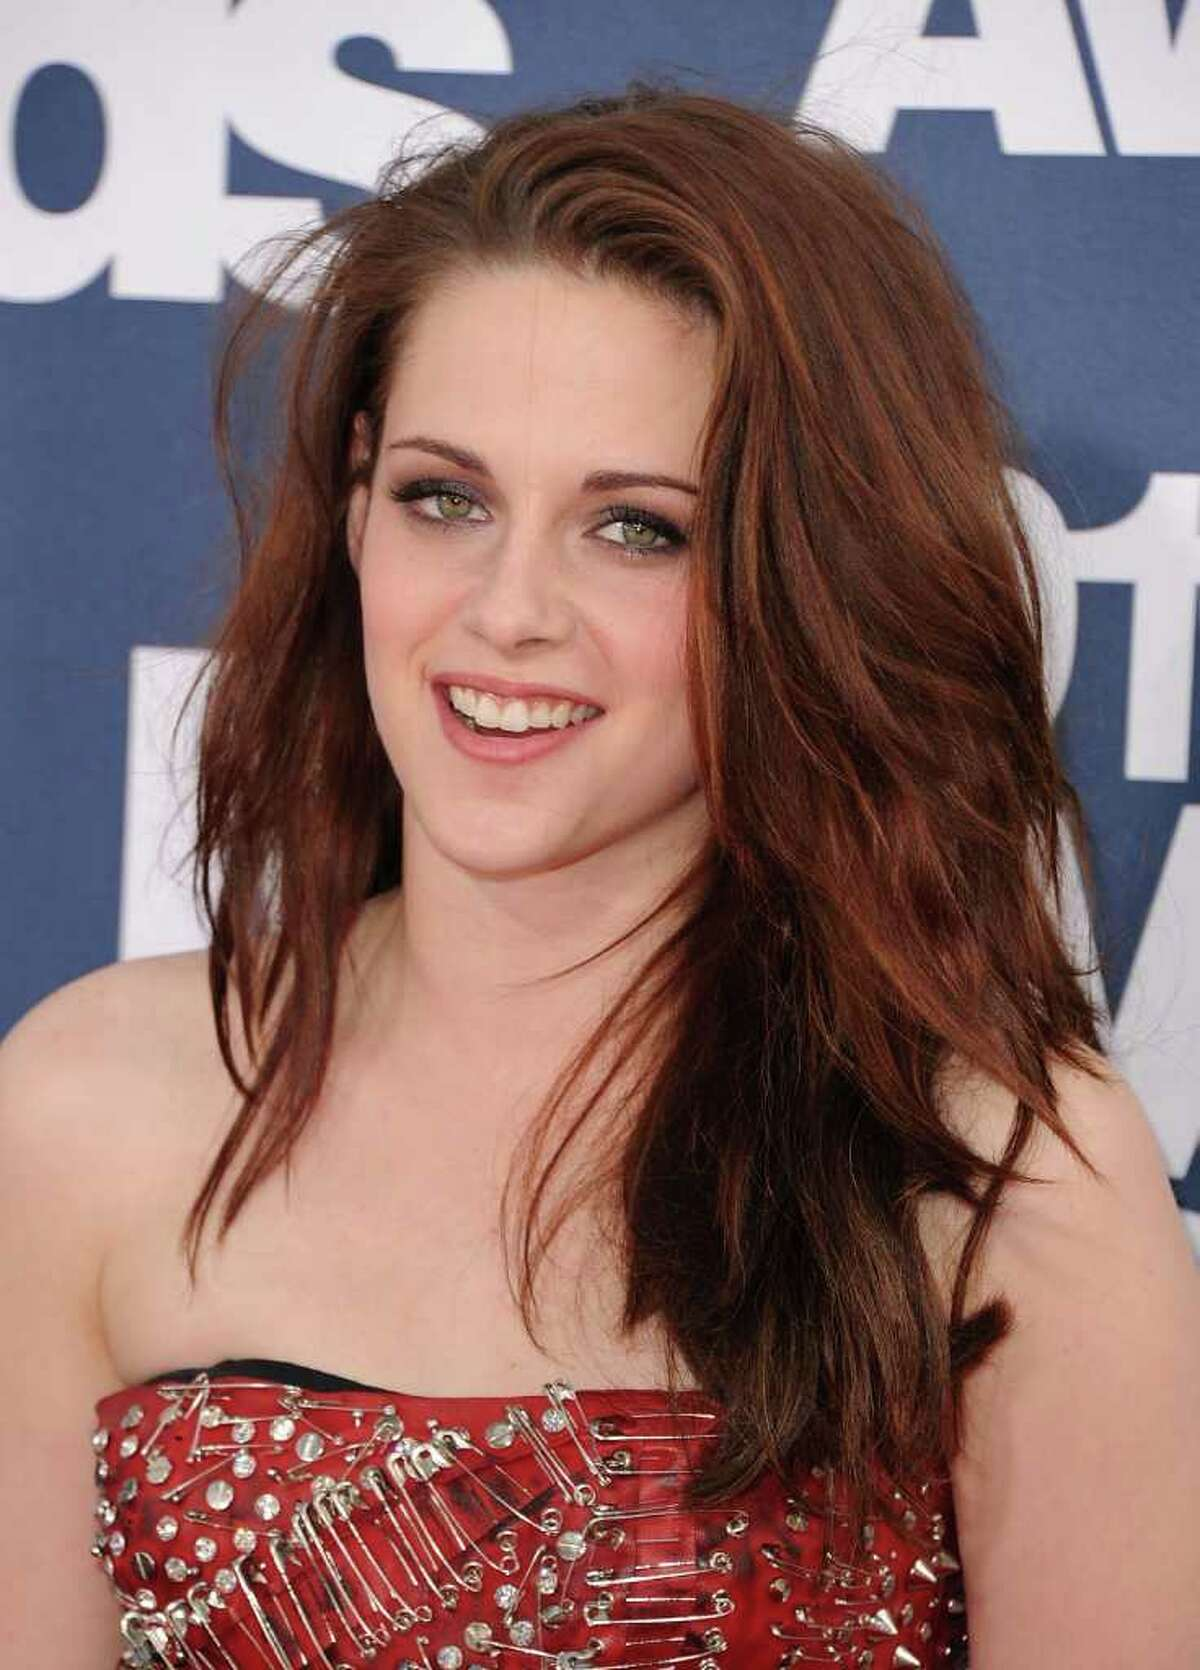 Actress Kristen Stewart arrives at the 2011 MTV Movie Awards at Universal Studios' Gibson Amphitheatre in Universal City, California.